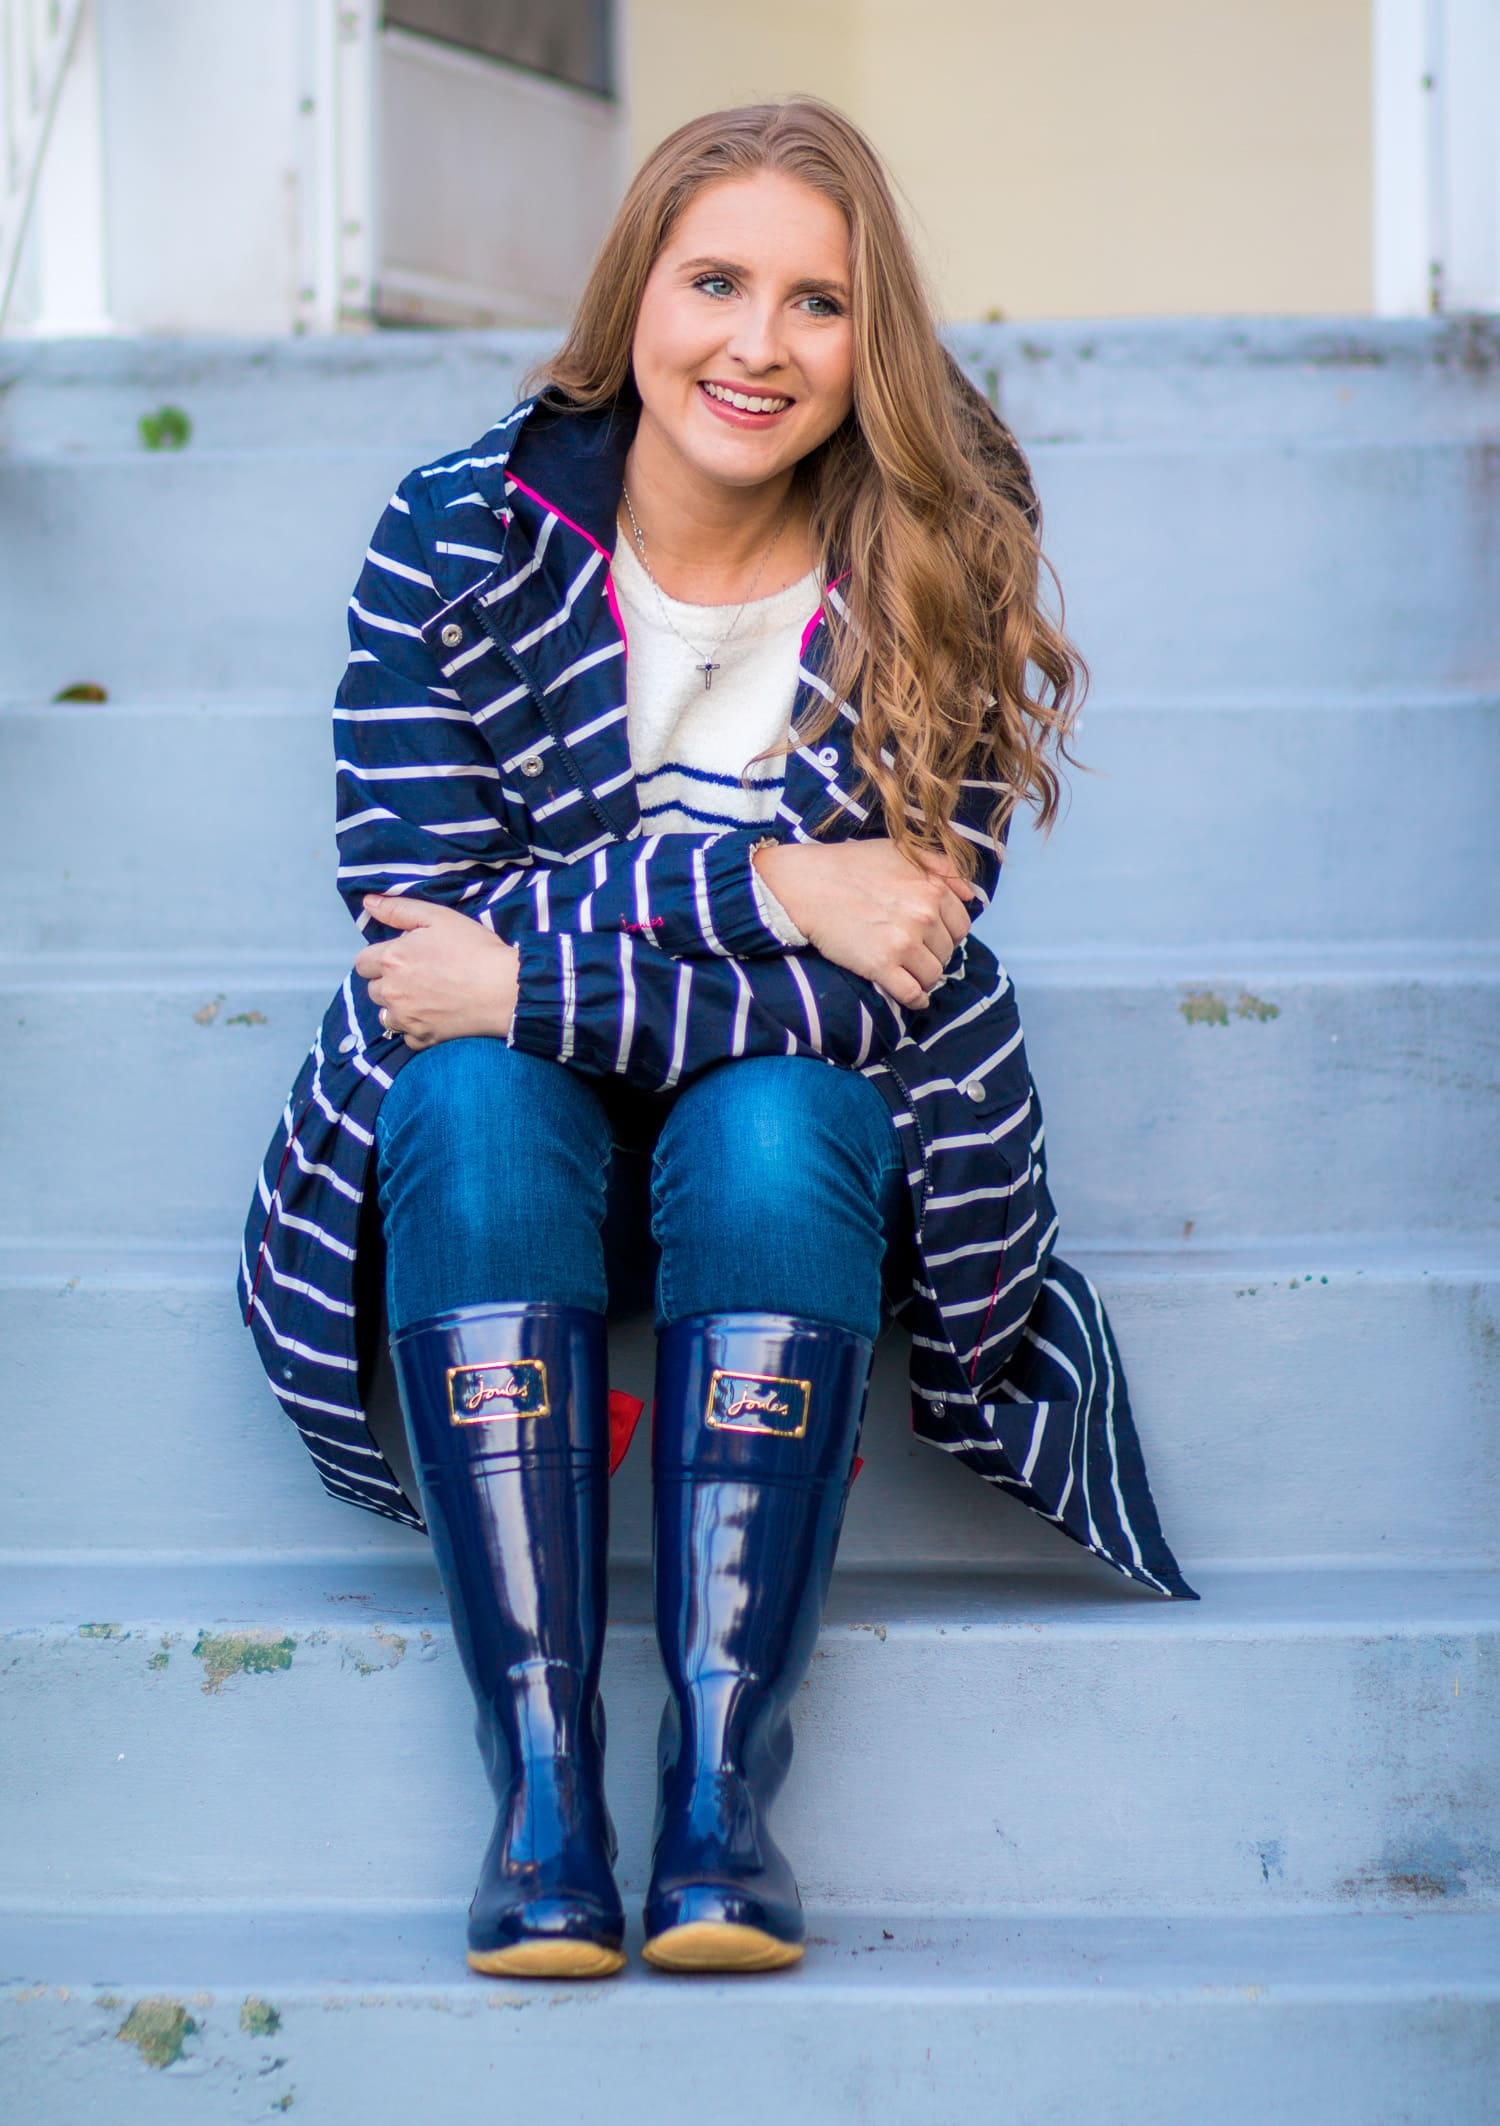 joules-cozy-navy-white-striped-sweater-evedon-rainboots-striped-raincoat-right-as-rain-6606